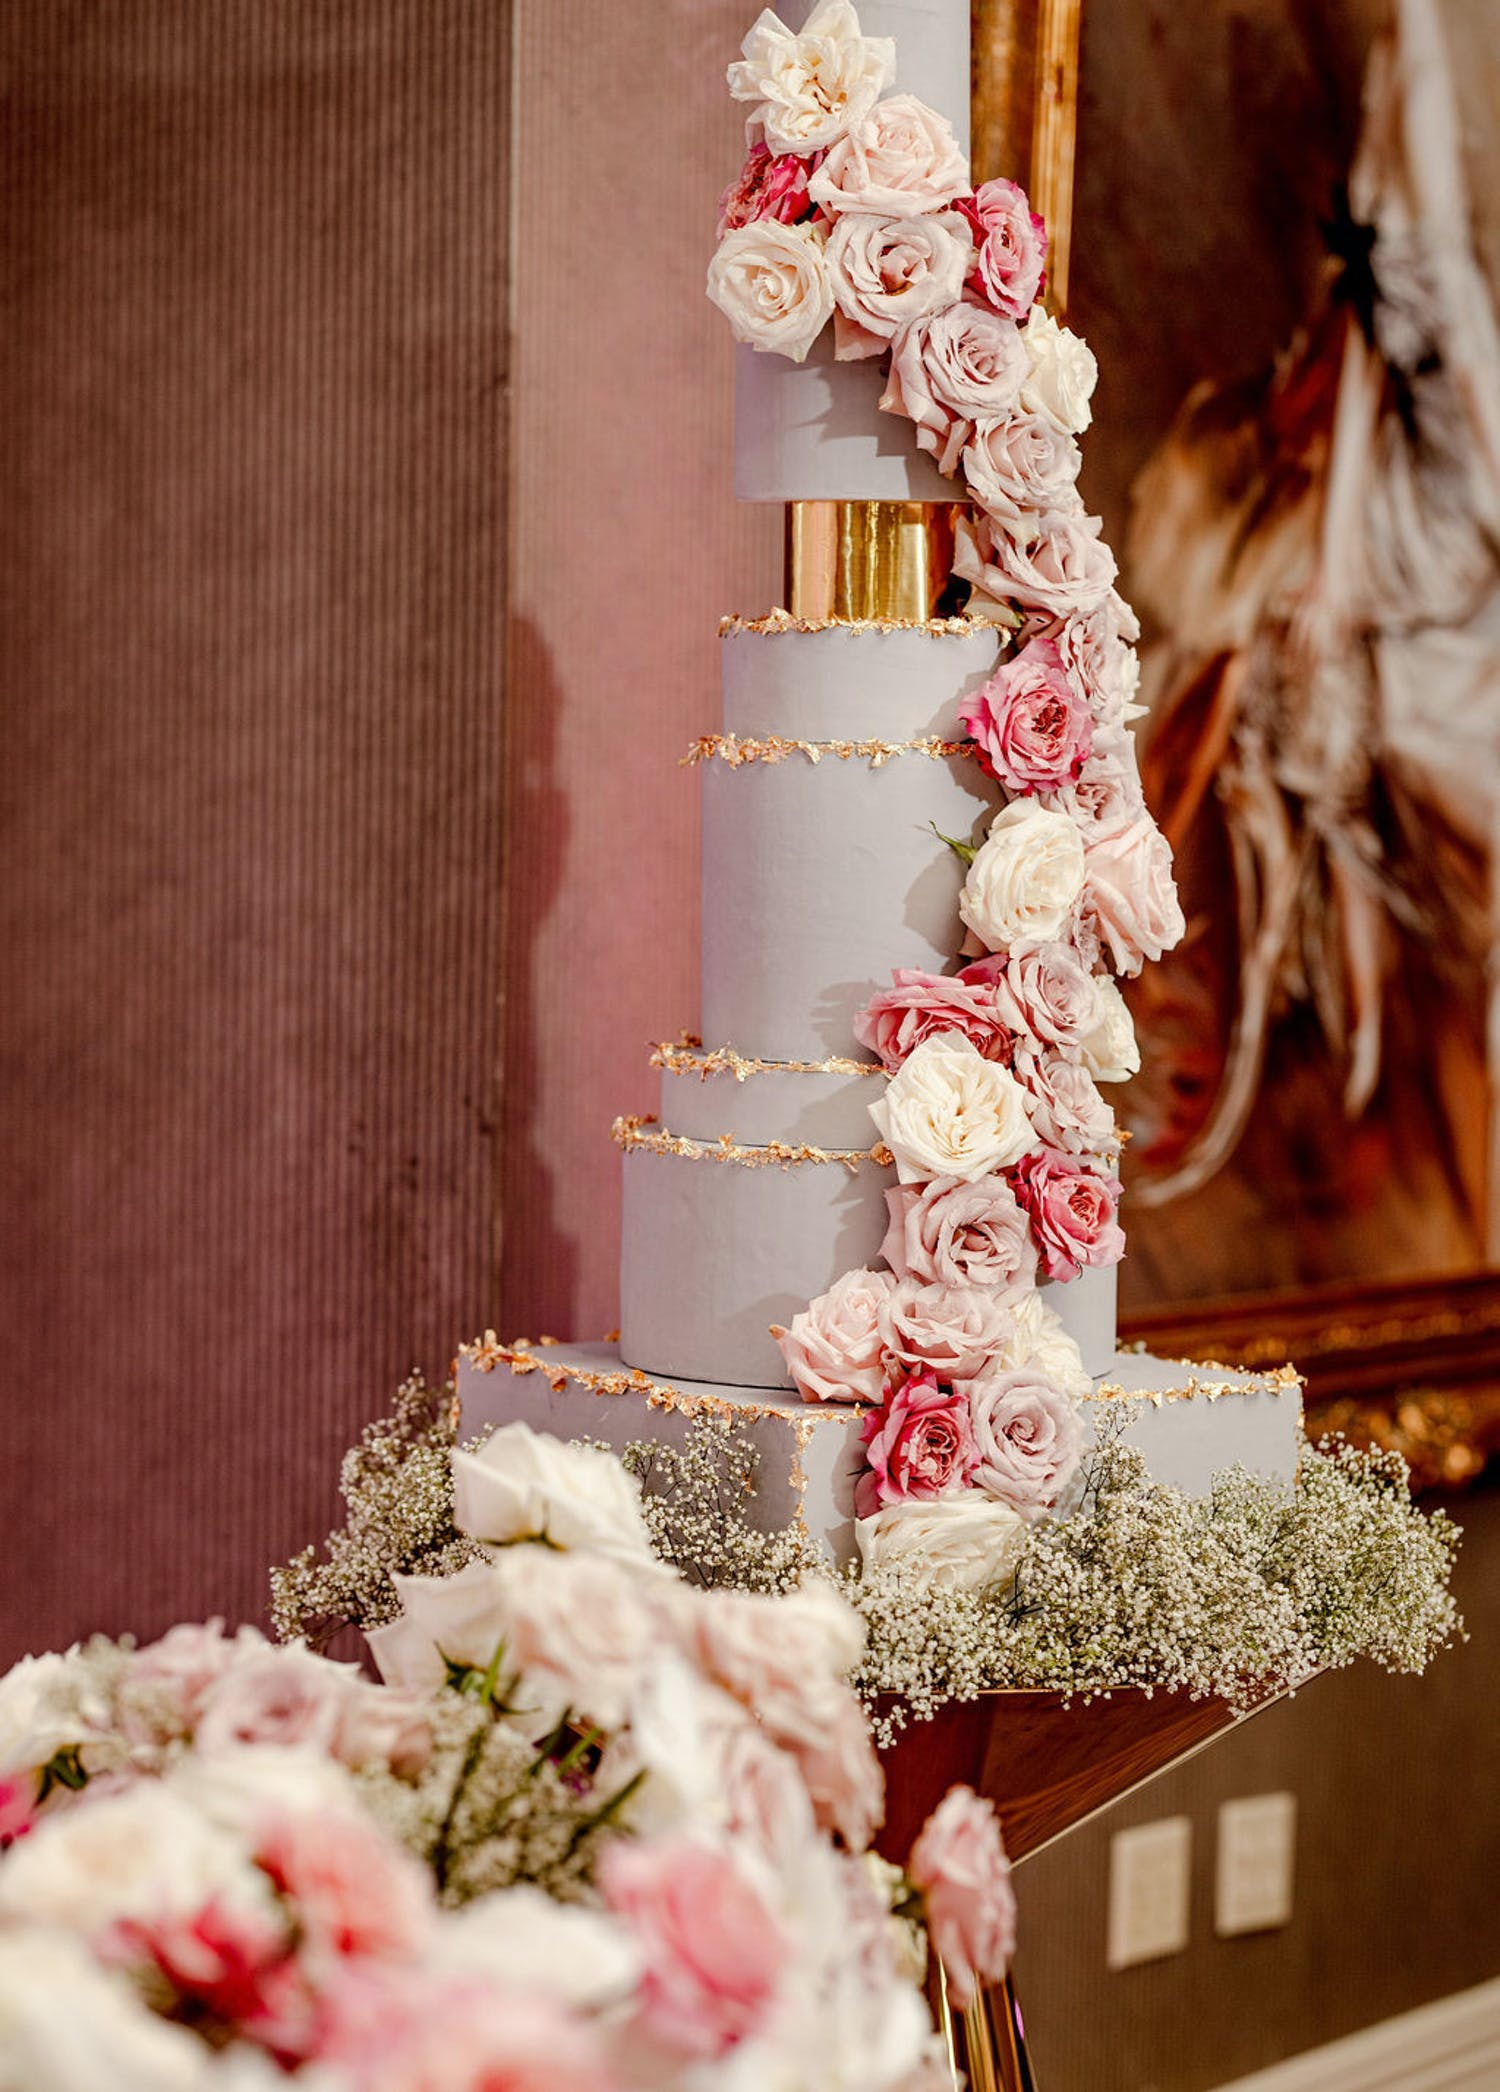 Towering White and Gold Wedding Cake With Cascade of Pink Roses and Bed of Baby's Breath Designed by Déjà vu Sweets | PartySlate